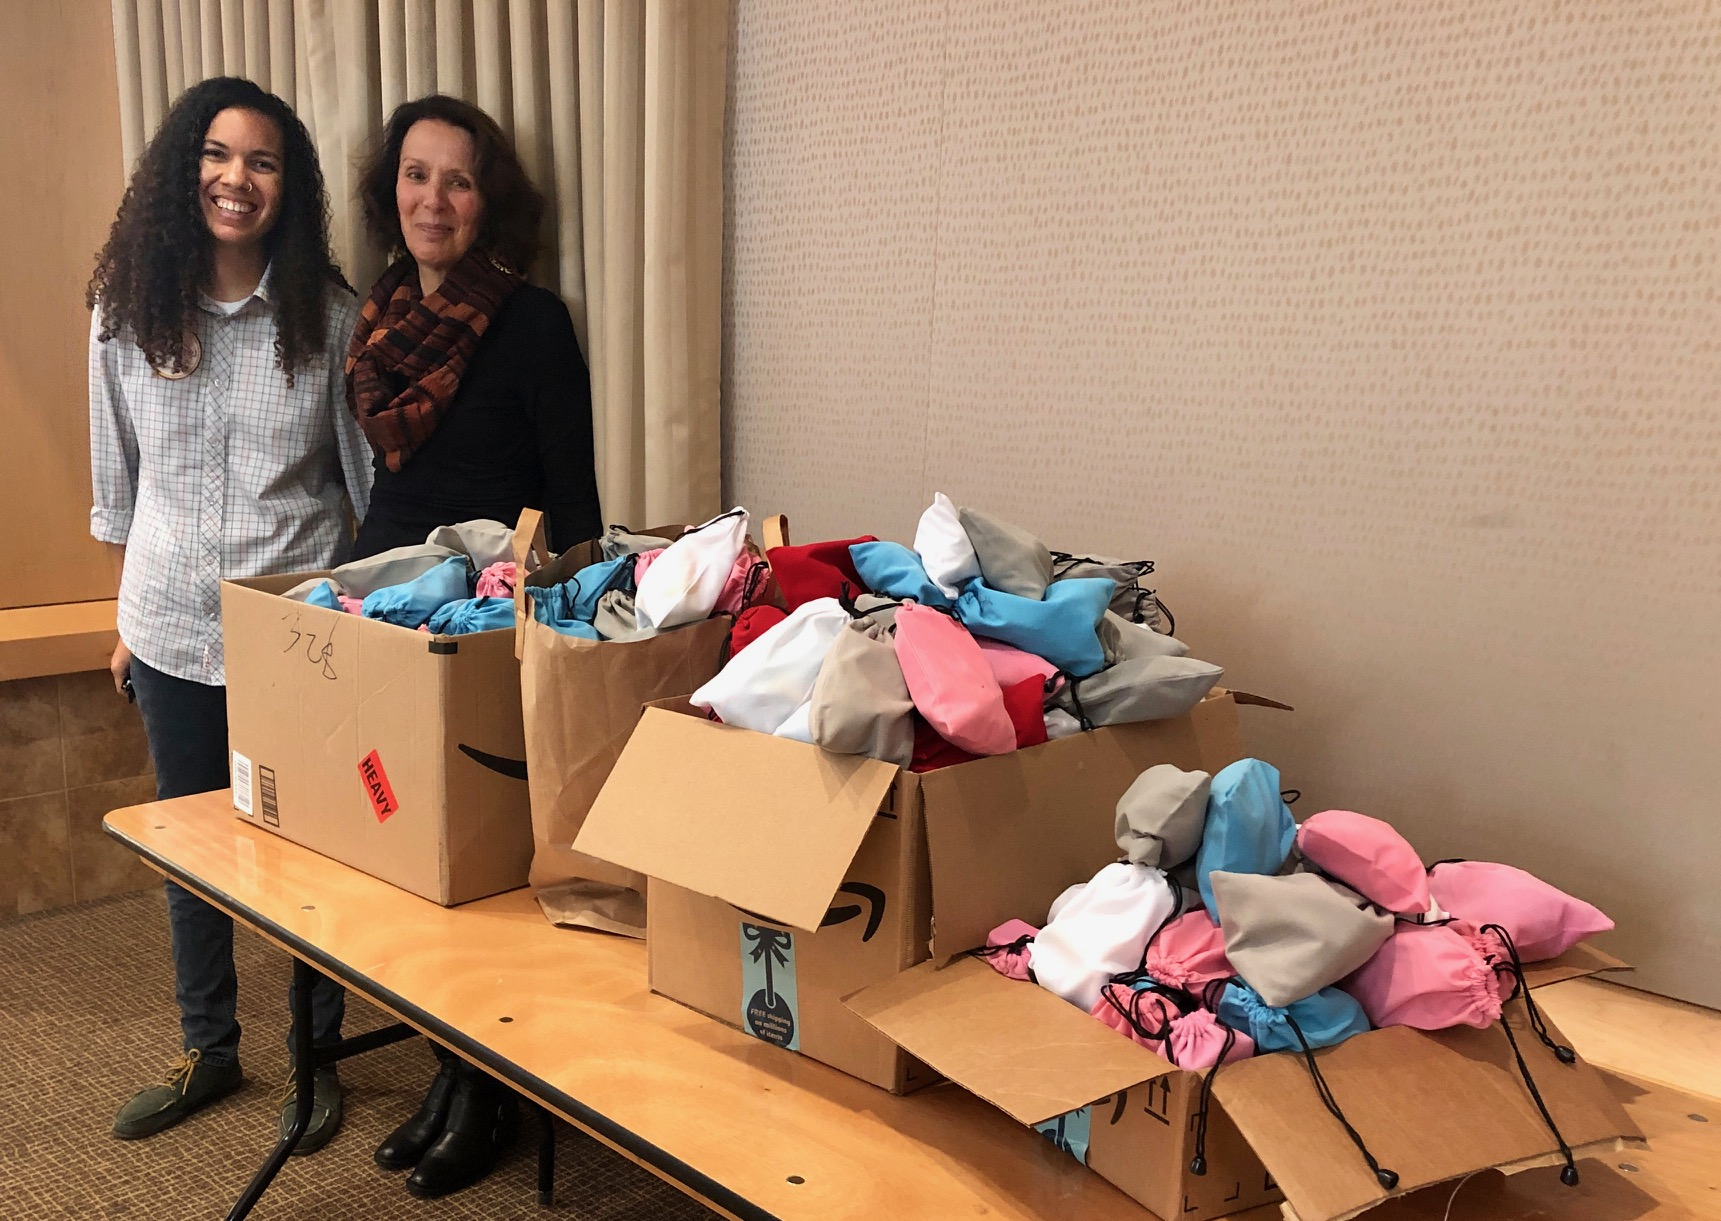 Adrienne Keel, Director of LGBTQ Programs at our LGBTQ Youth Space, and Harriet Pecot, Caminar's Director of Development, stand alongside bags of gifts for the Youth Space from the Palo Alto Rotary Club.